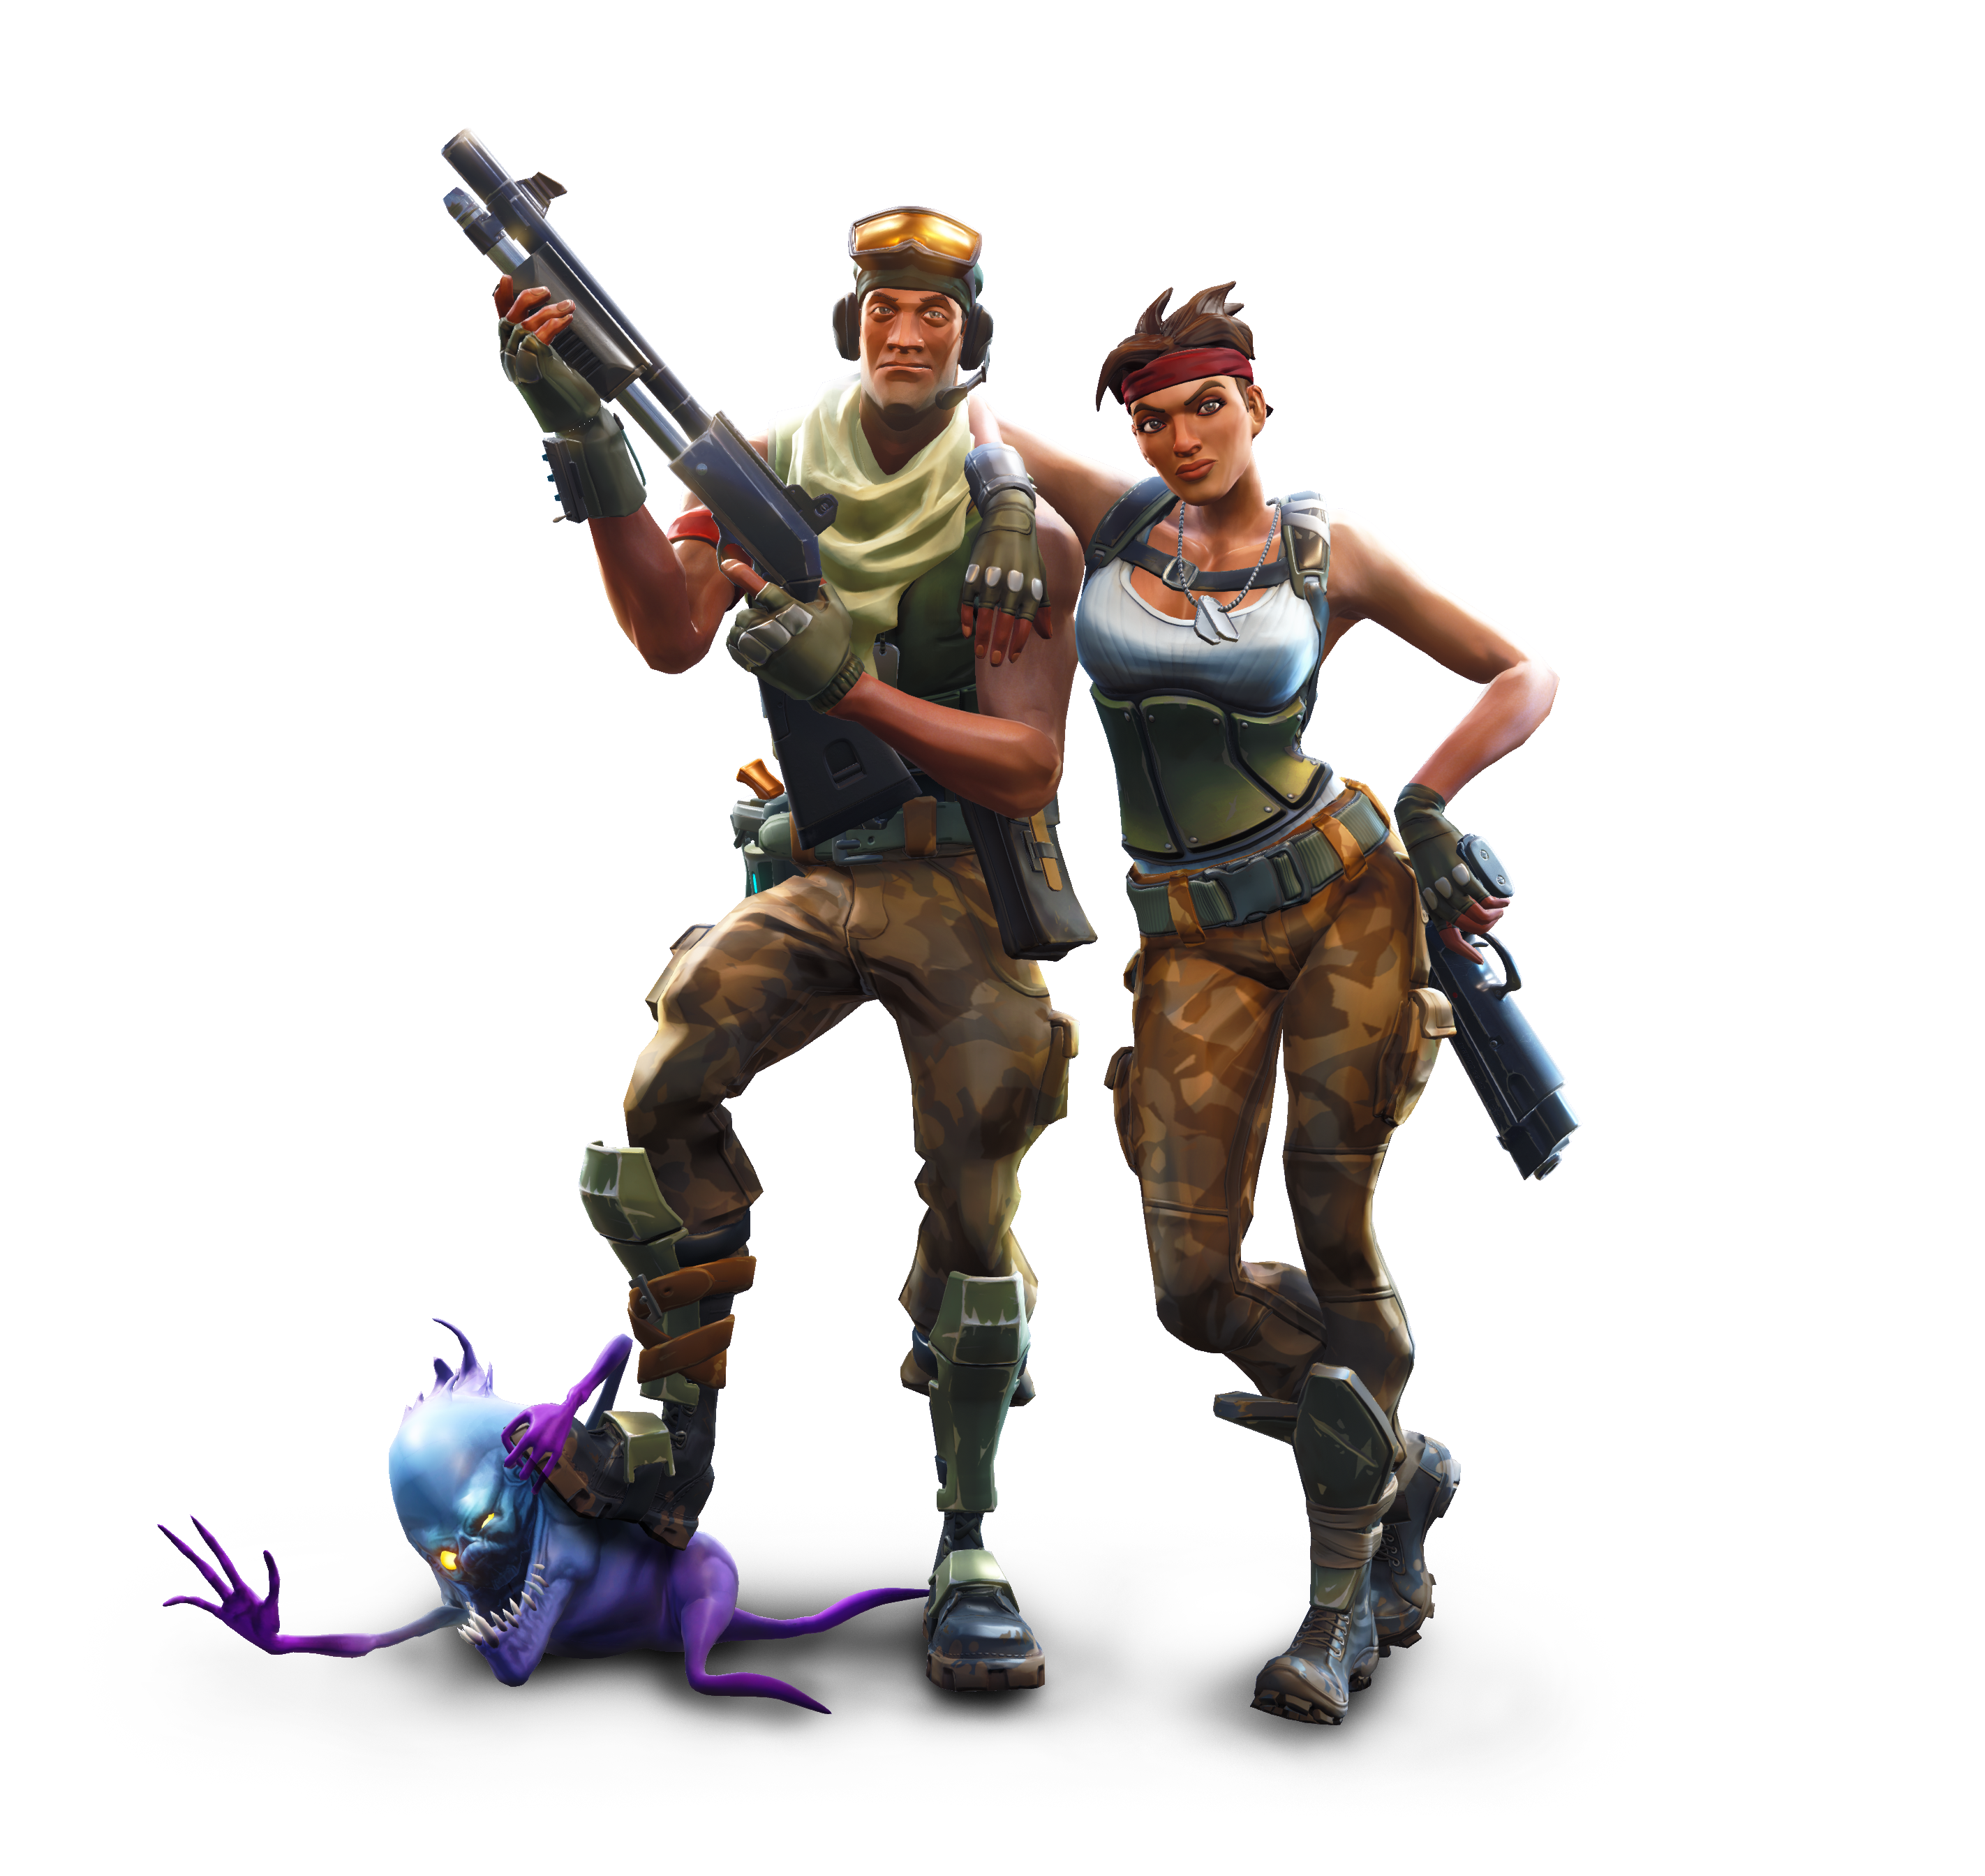 fortnite clipart default skin transparent